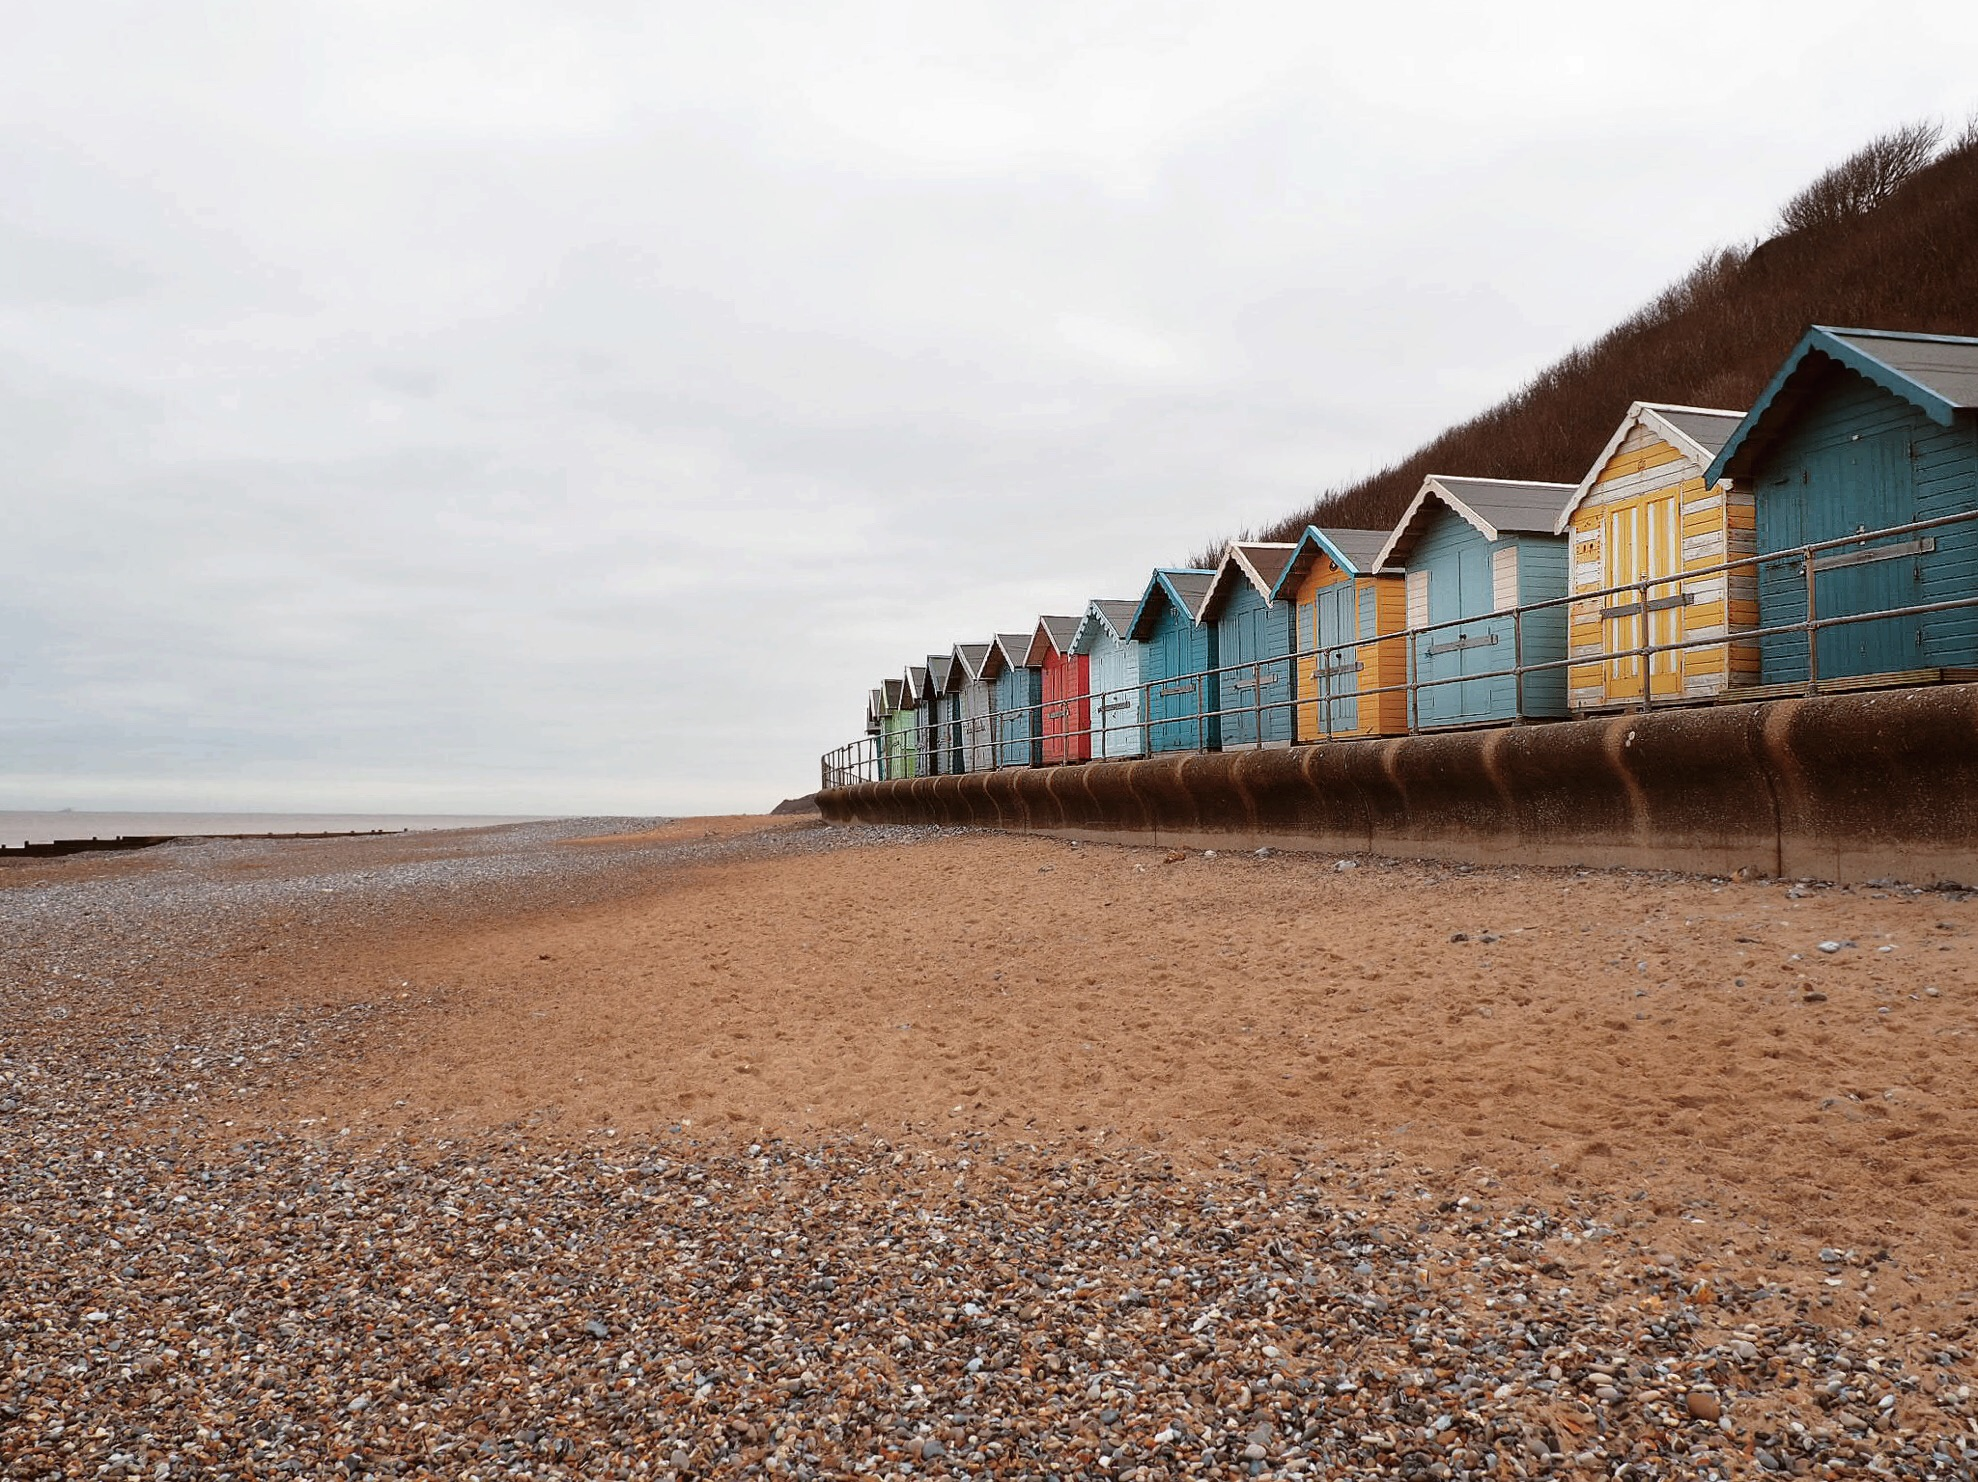 Cromer's famous beach huts